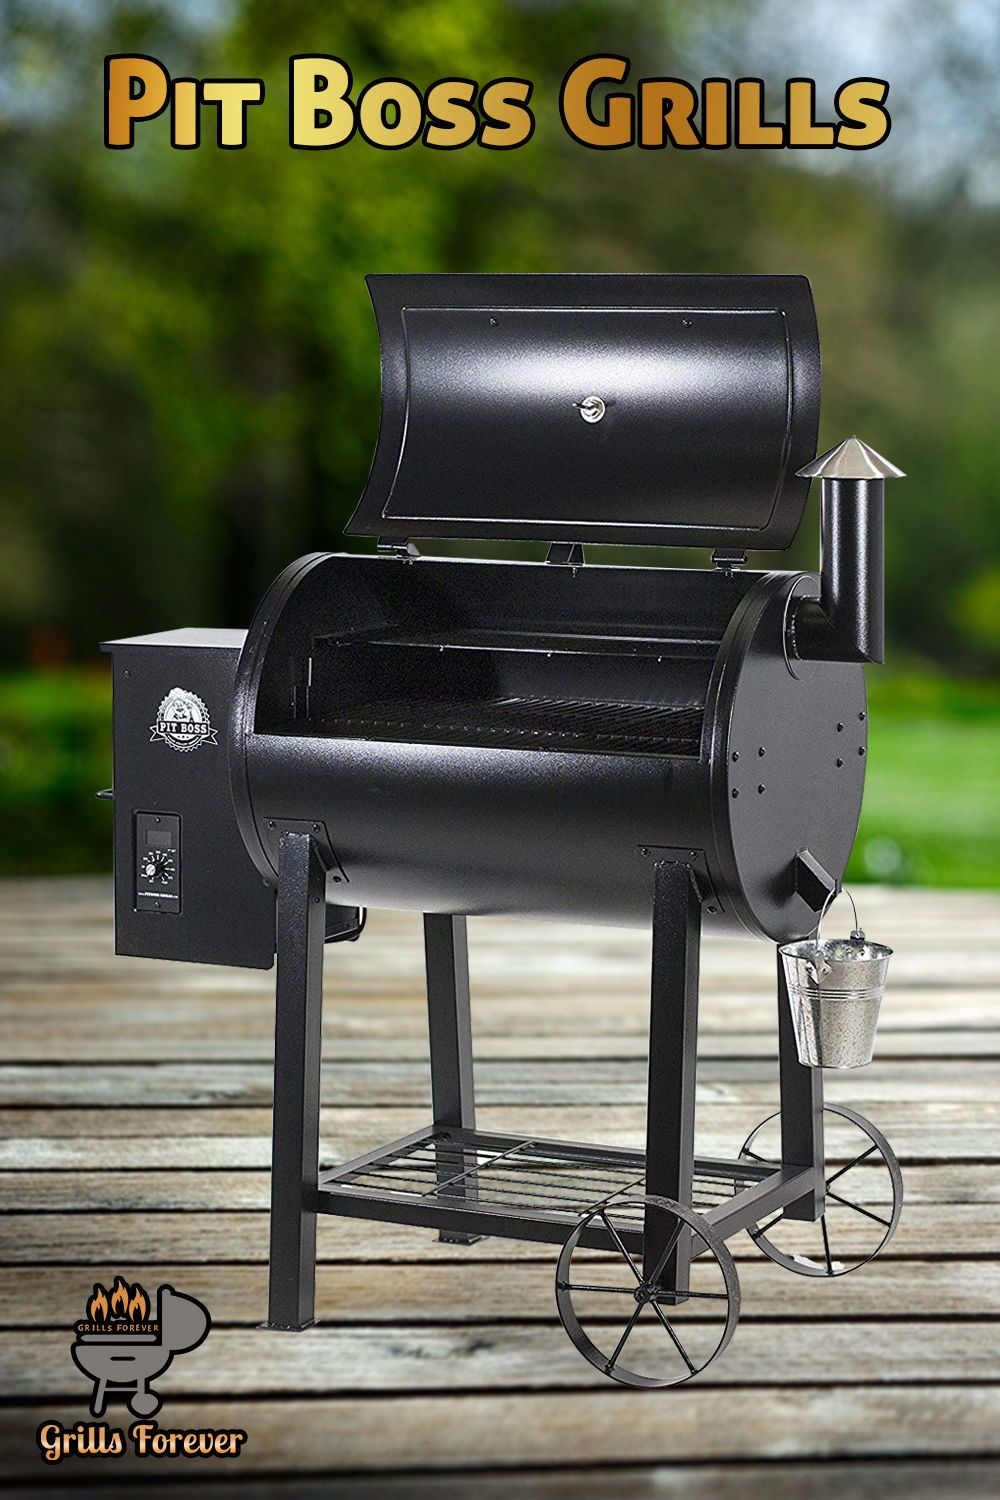 Top 5 Pit Boss Grills June 2020 Reviews Buyers Guide Grills Forever Grilling Pit Boss Pellet Grill Pit Boss Smoker,Sangria Recipe White And Red Wine